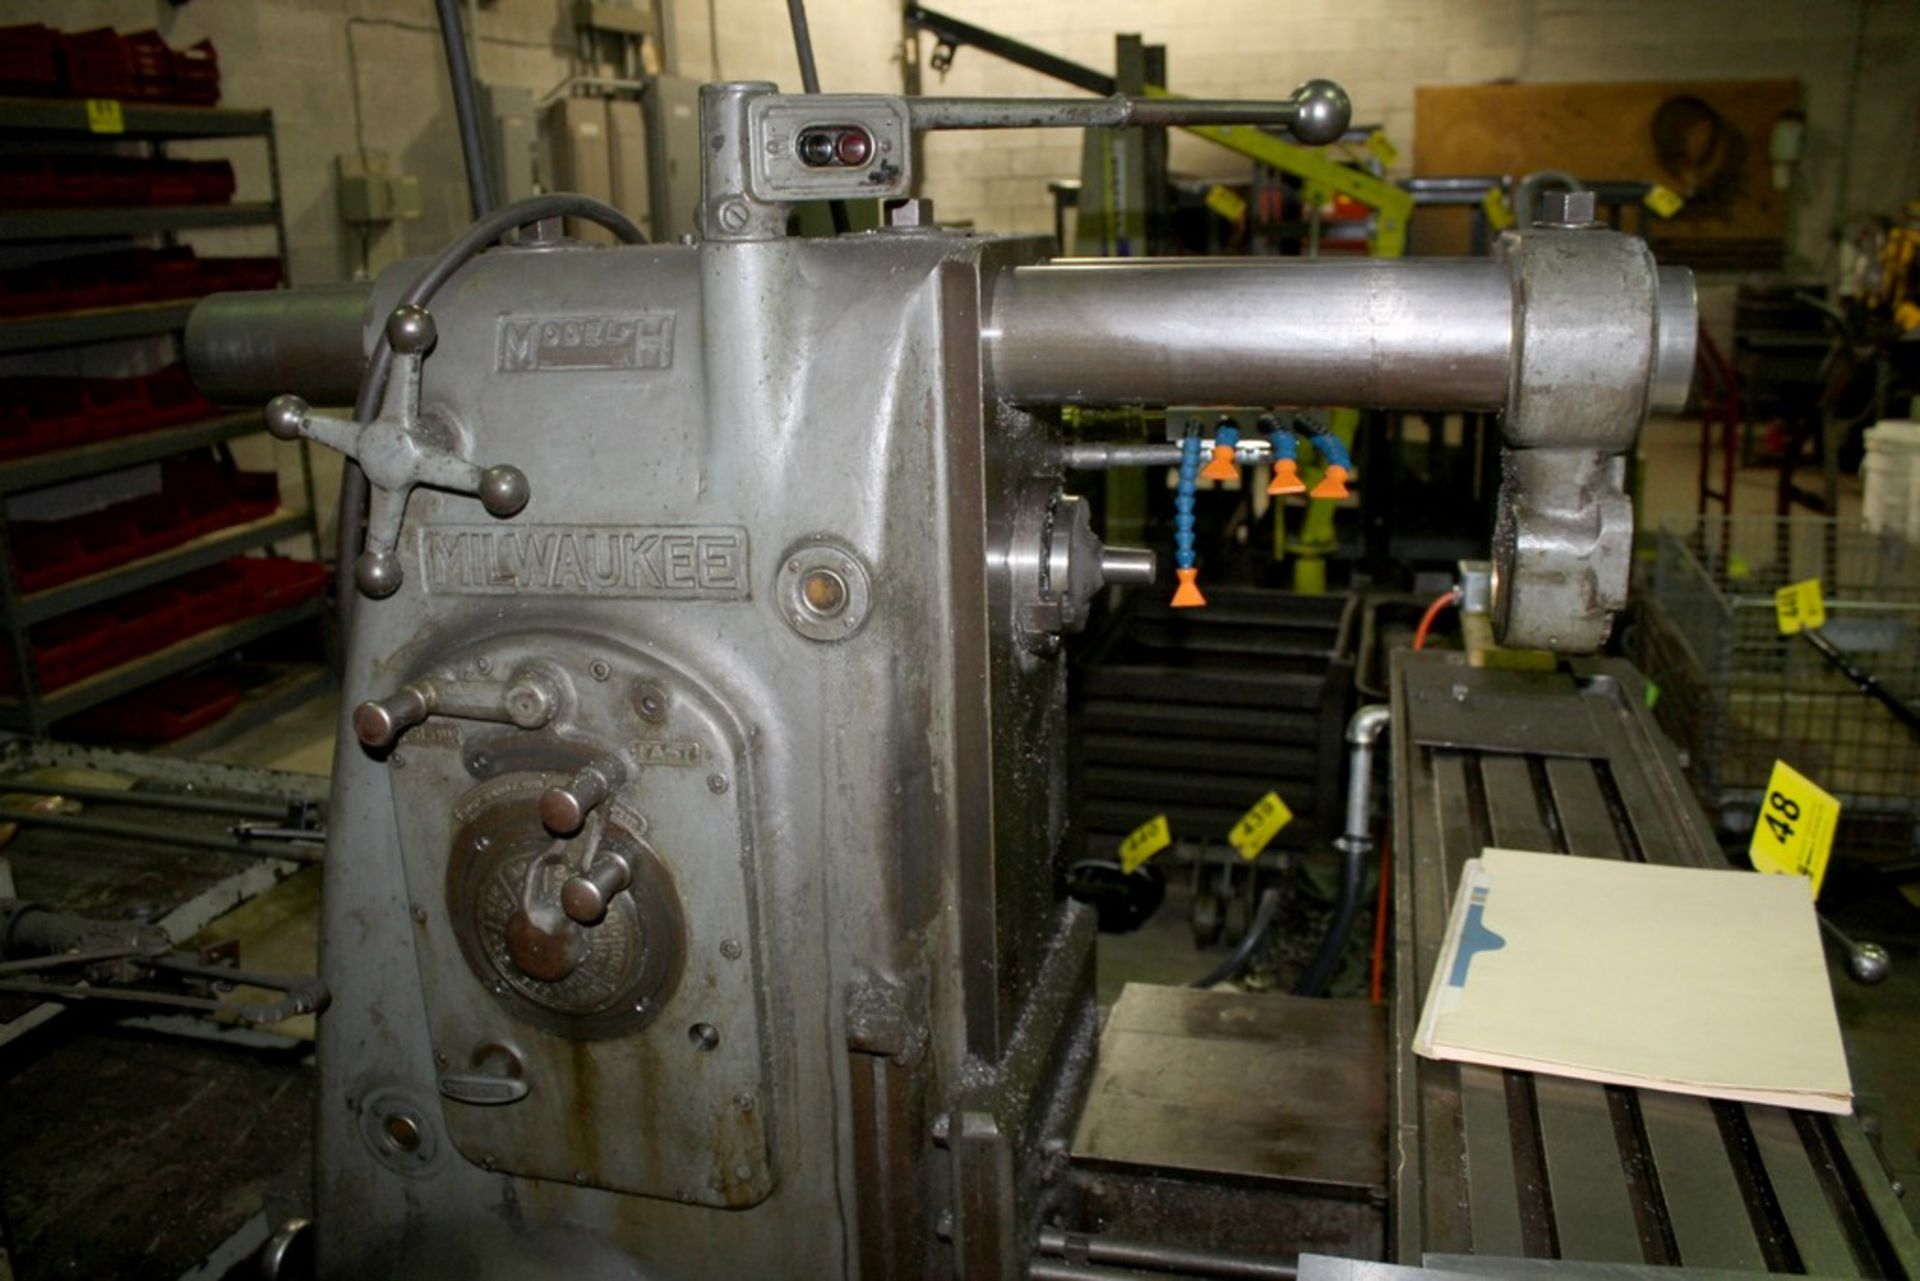 Lot 48 - MILWAUKEE MODEL H PLAIN HORIZONTAL MILLING MACHINE S/N 9-3073, T-SLOT WORK TABLE, ARBOR SUPPORT